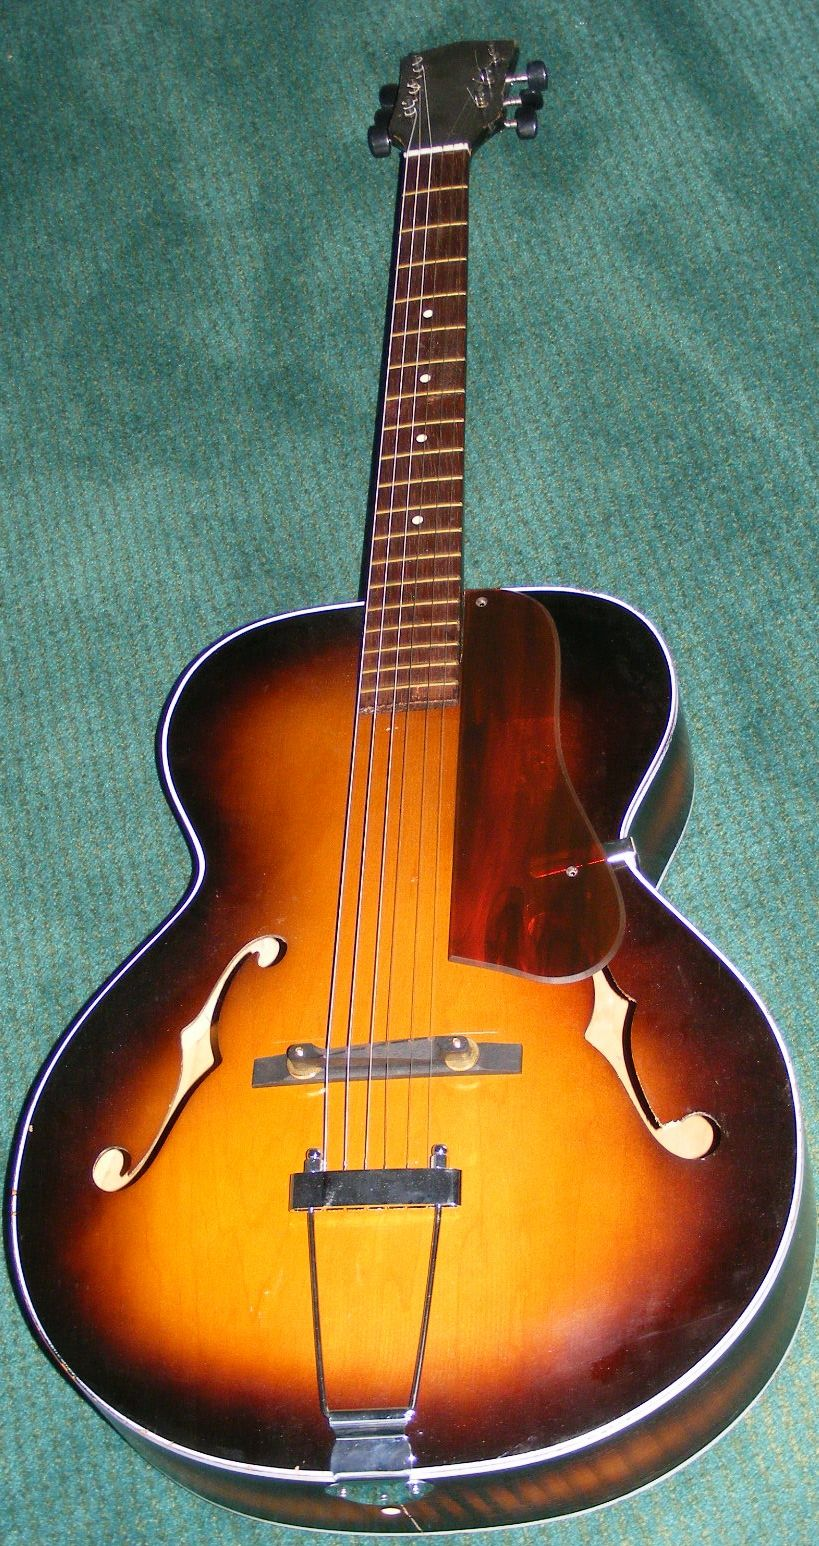 archtop vintage repro guard for gibson l48 or most non cutaway archtop guitars this is slightly. Black Bedroom Furniture Sets. Home Design Ideas